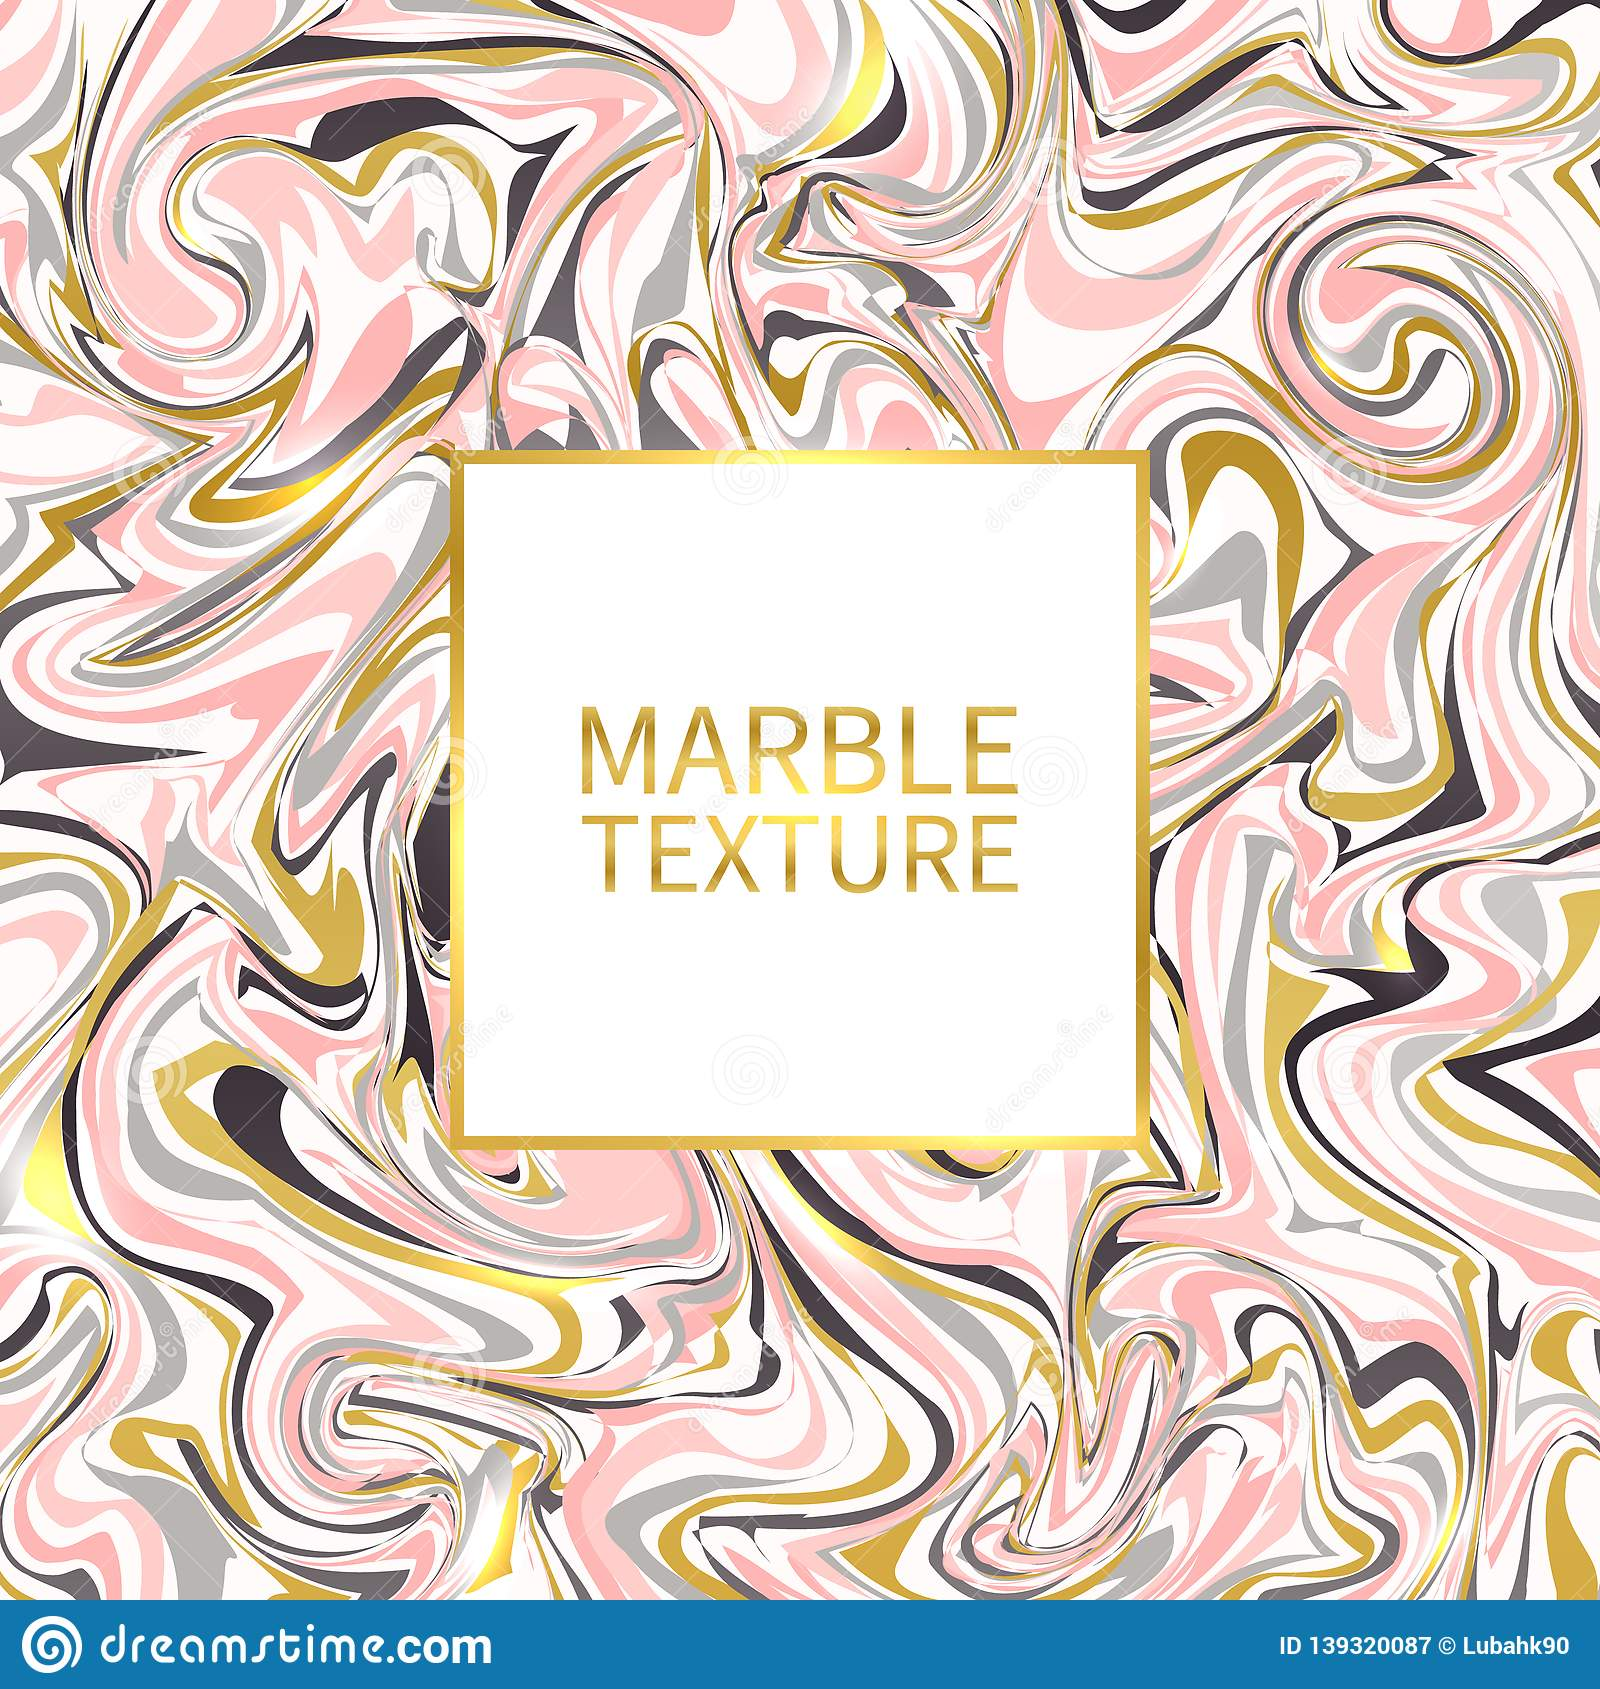 Marble Texture Gold Pink Black And White Marble Template Trendy Design For Wedding Invitation Poster Brochure Stock Vector Illustration Of Gold Golden 139320087